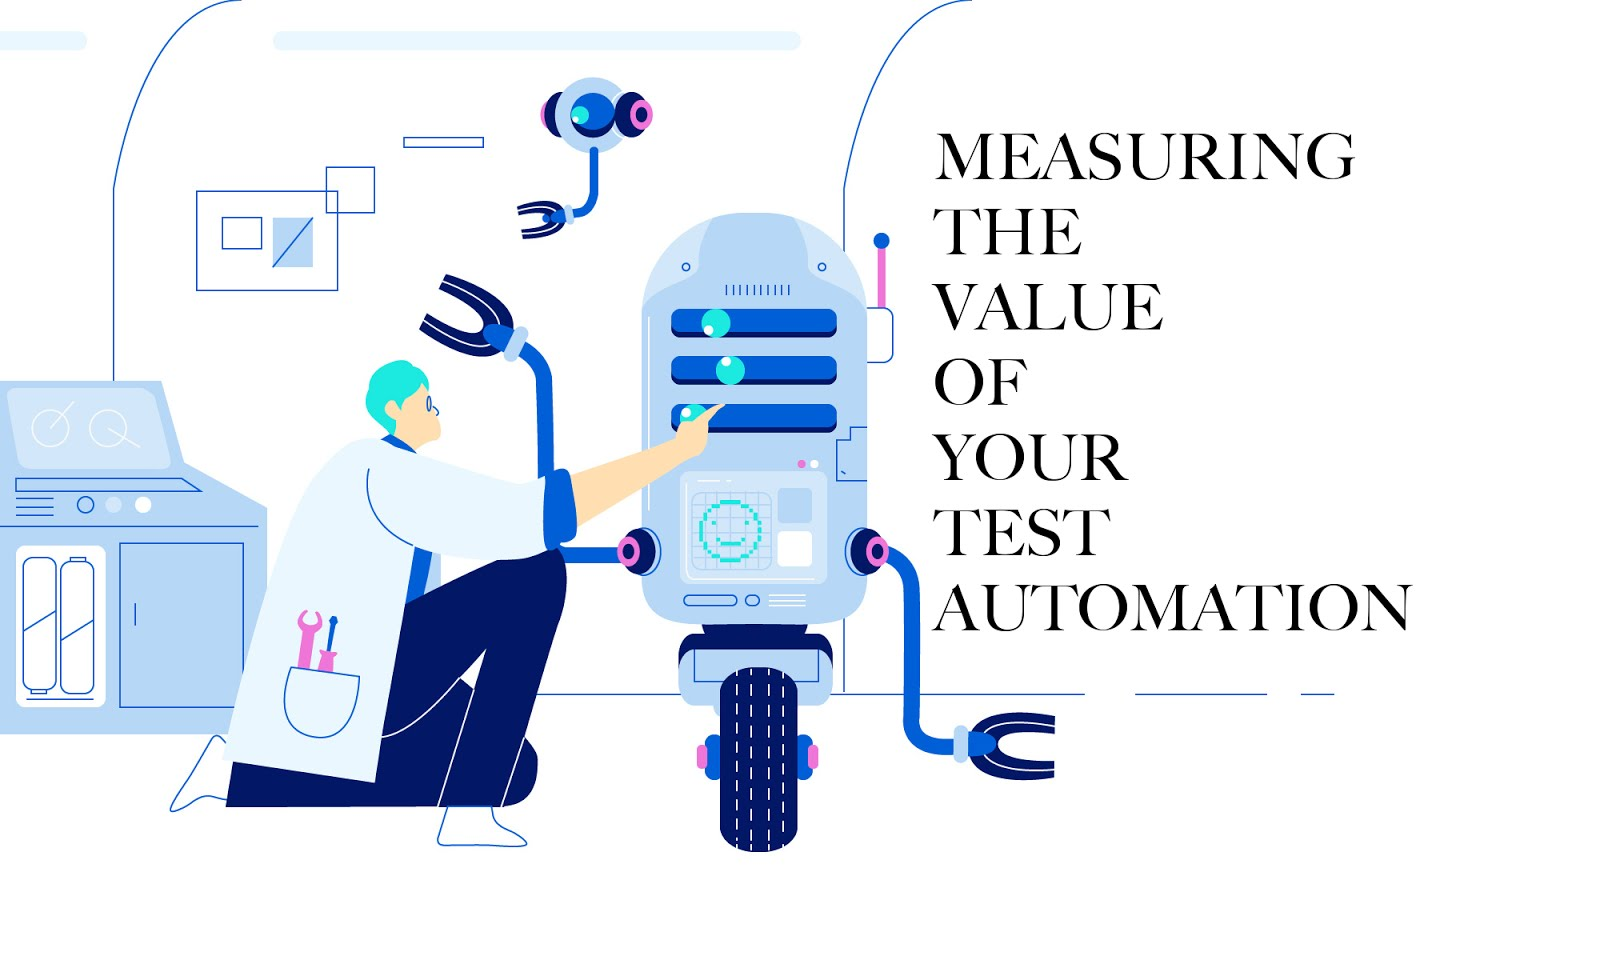 How to Measure the Value of your Test Automation?